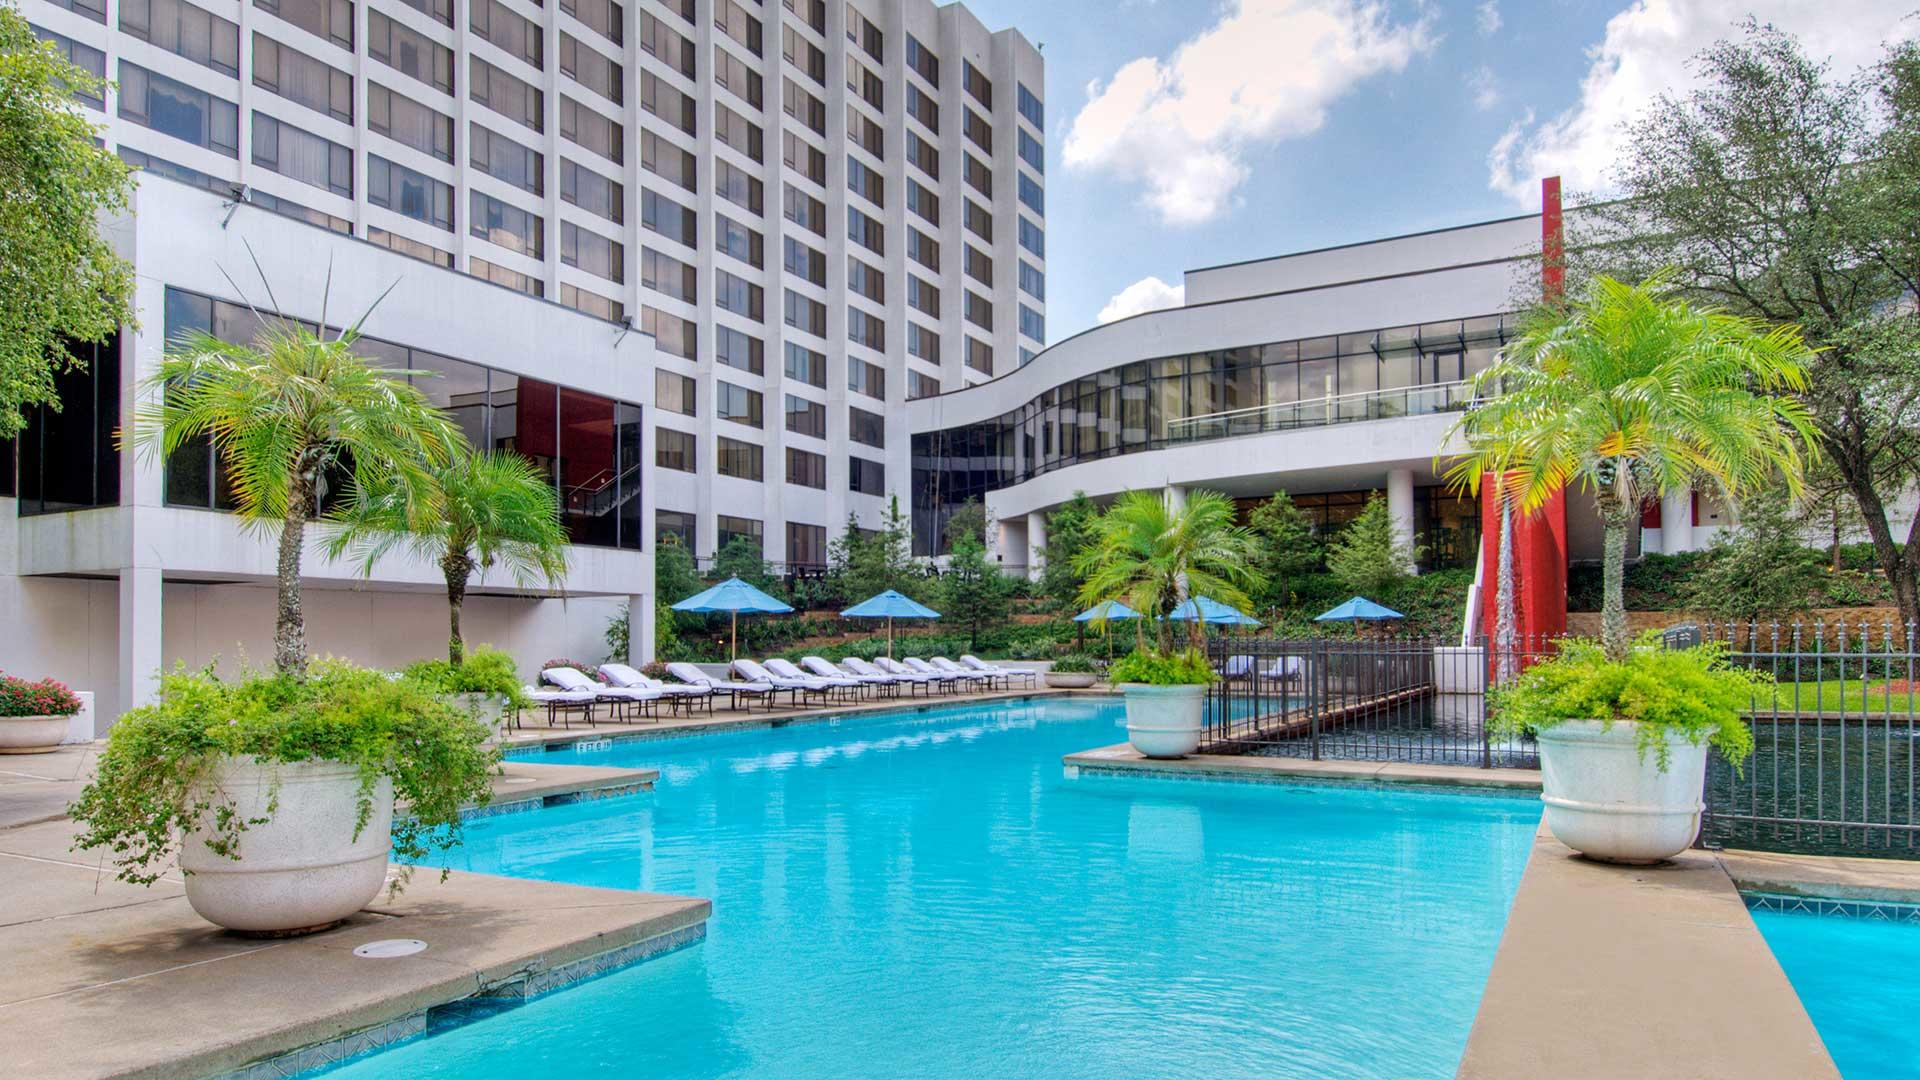 Omni houston hotel gha for Pool show discovery